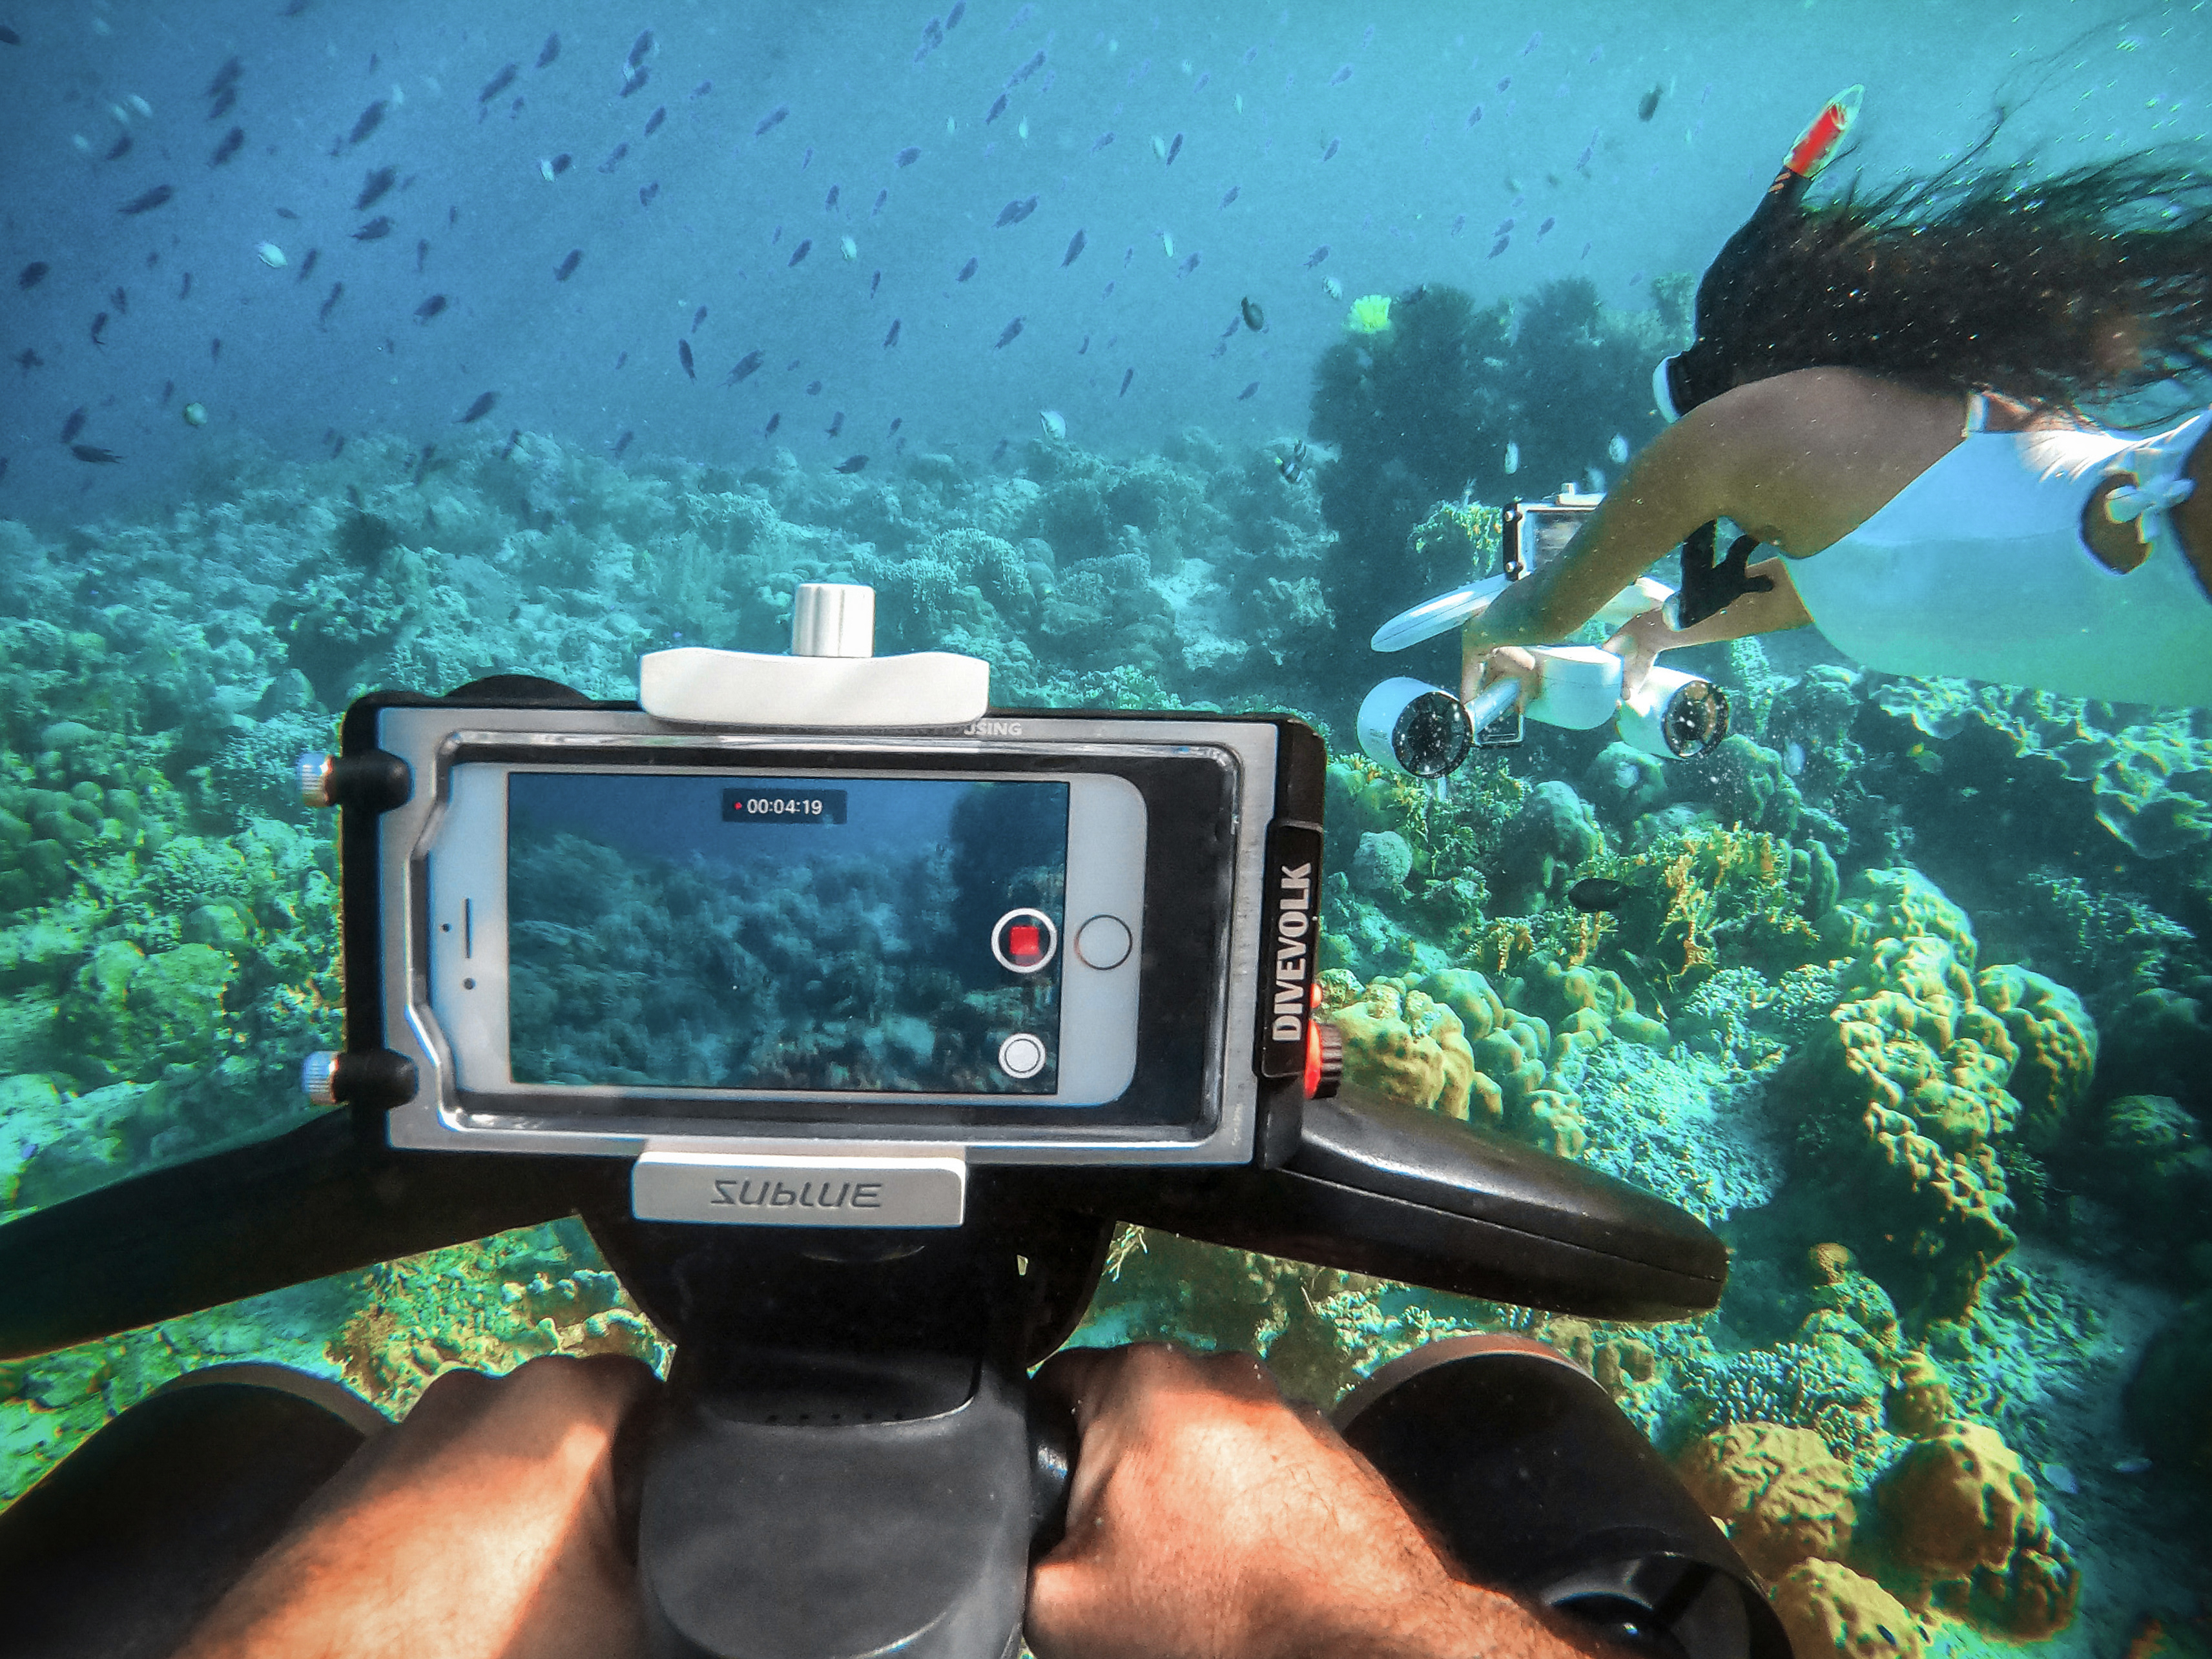 Mix Pro underwater scooter improves upon its predecessor